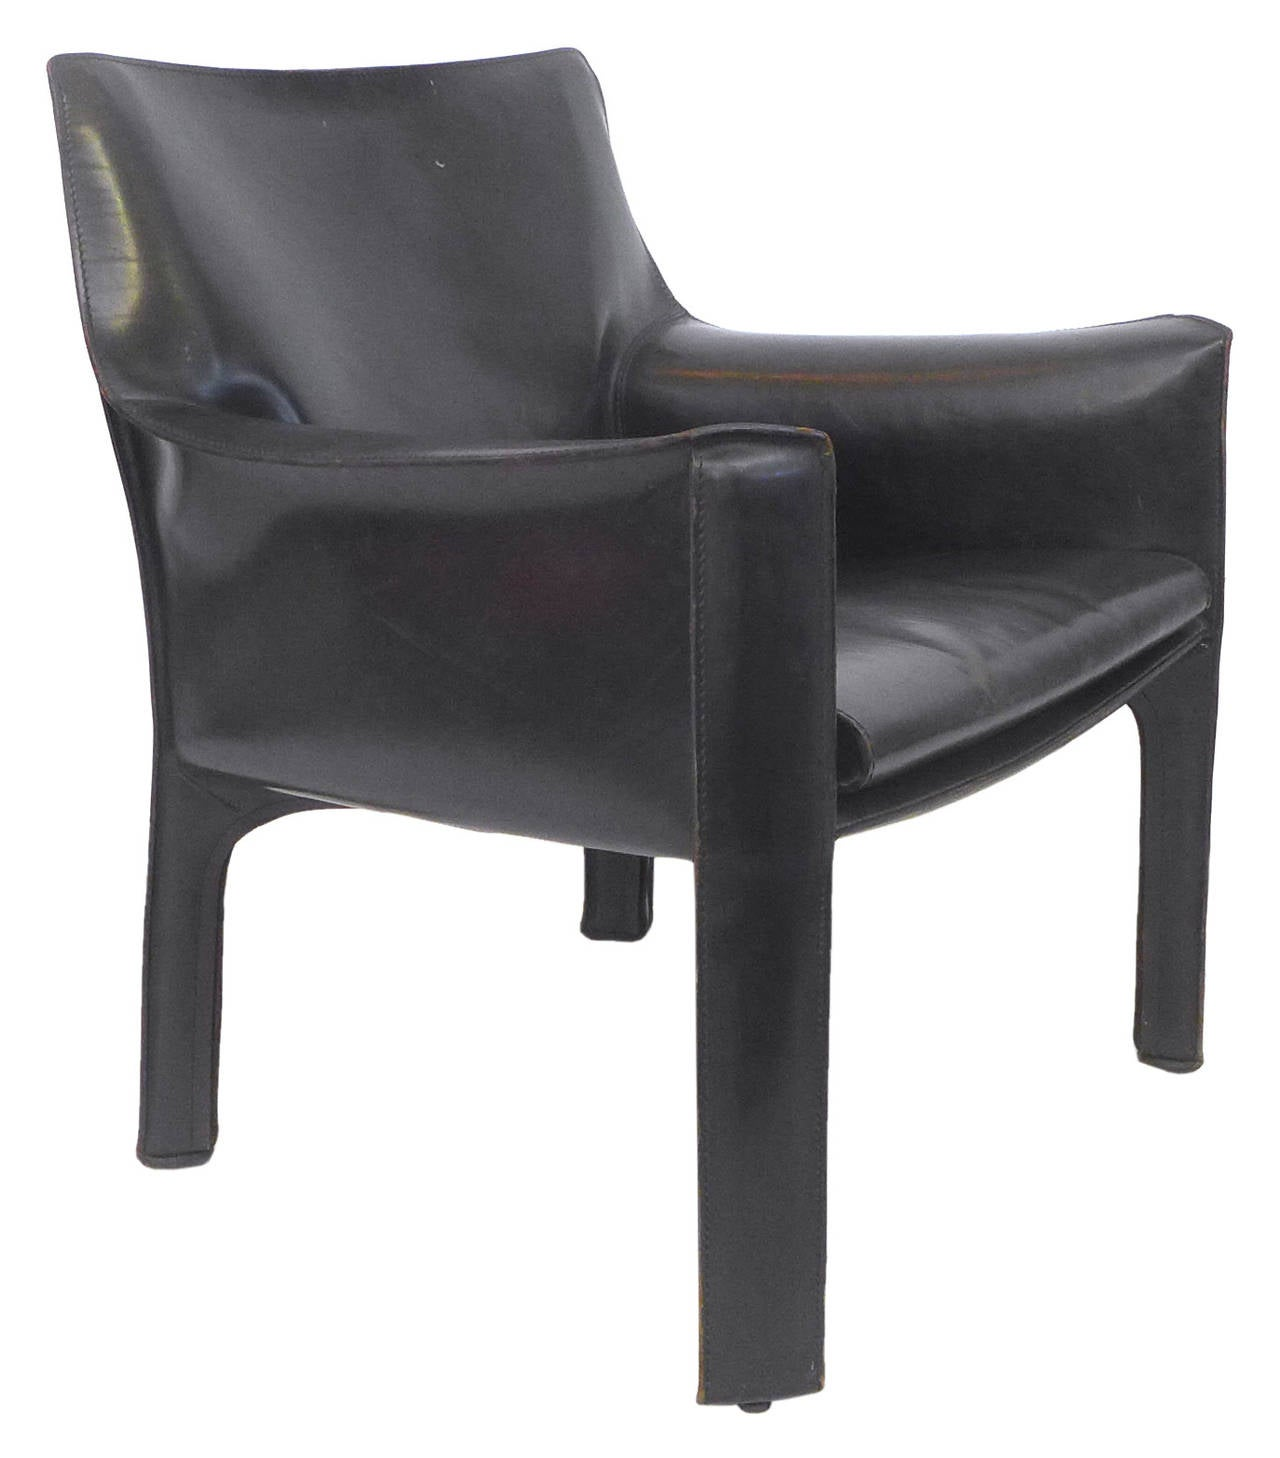 mario bellini chair office posture corrector black leather cab by for cassina at